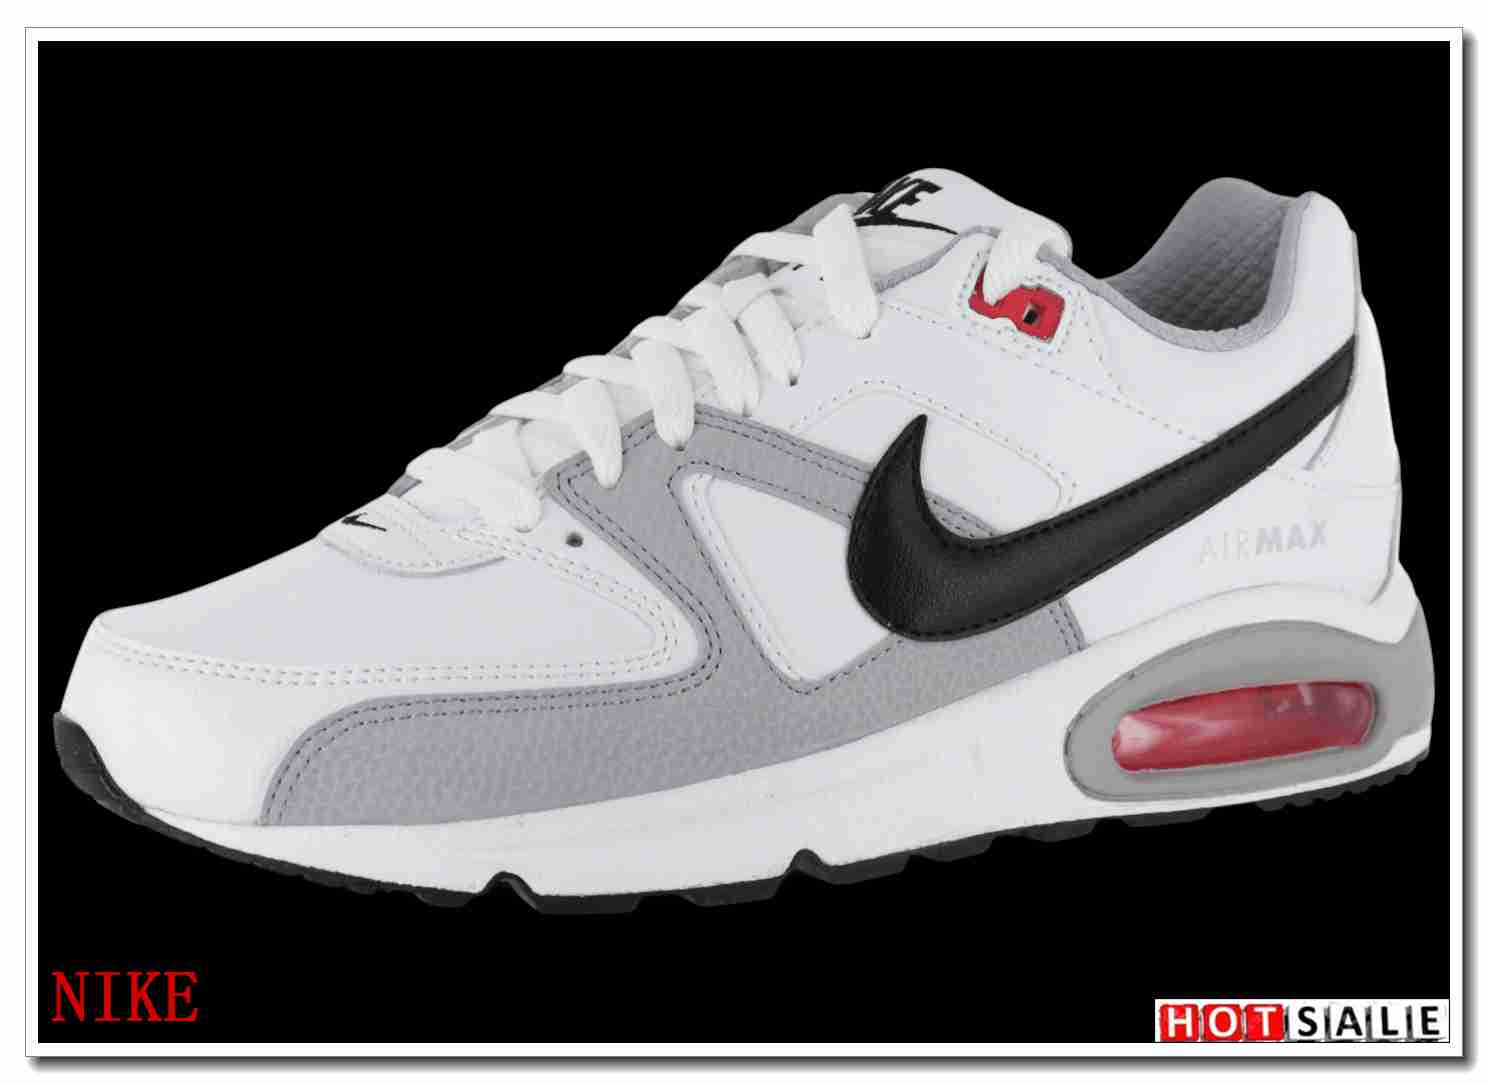 check out 9b691 0344f MQ2779 main douce 2018 Nouveau style Nike Air Max Command - Homme  Chaussures - Promotions Vente - H.K.Y. 928 - Taille   40~44